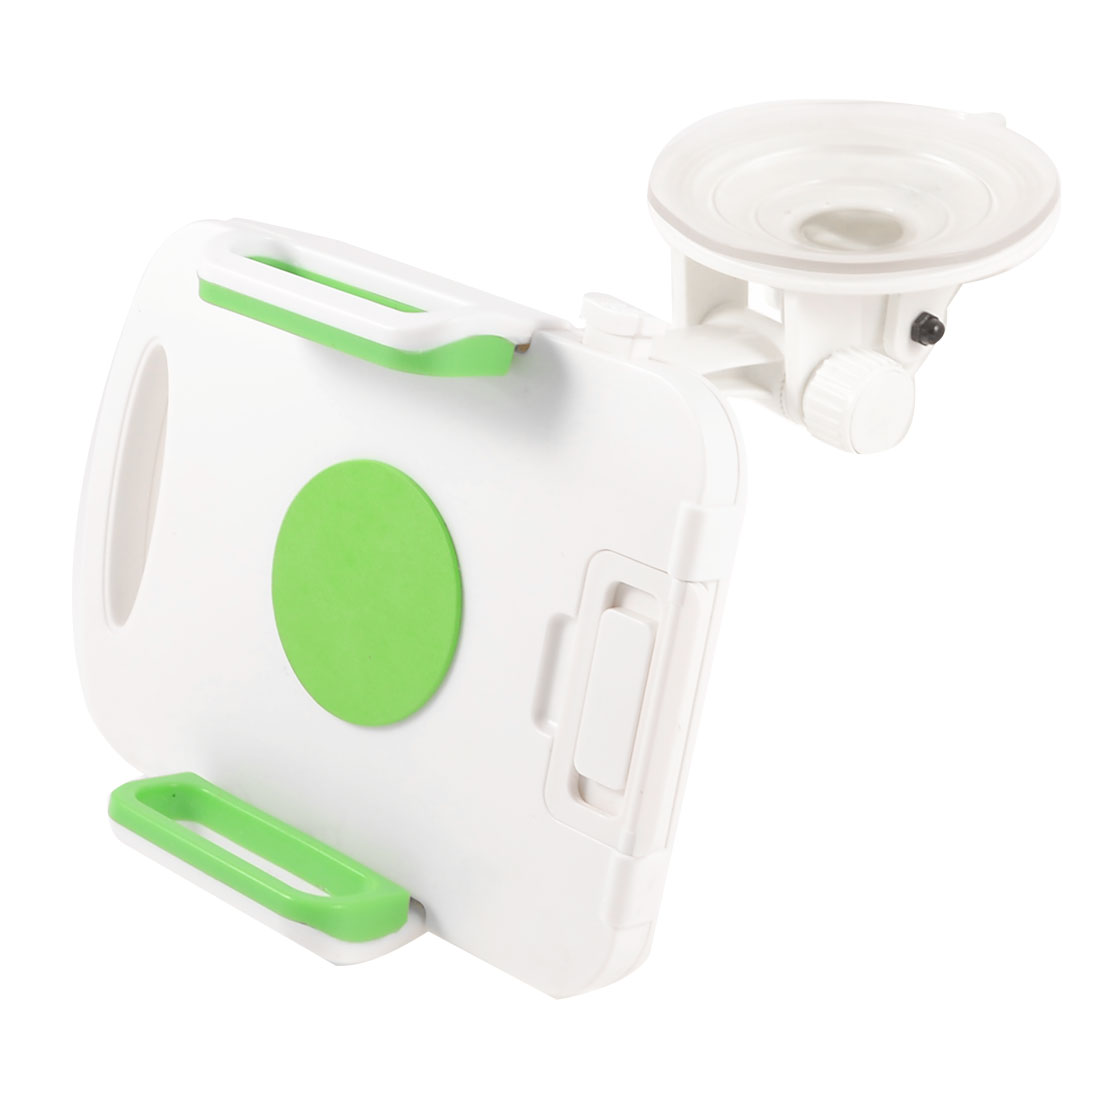 Tablet Suction Windshield Mount Holder Bracket White Green for Apple iPad 2 3